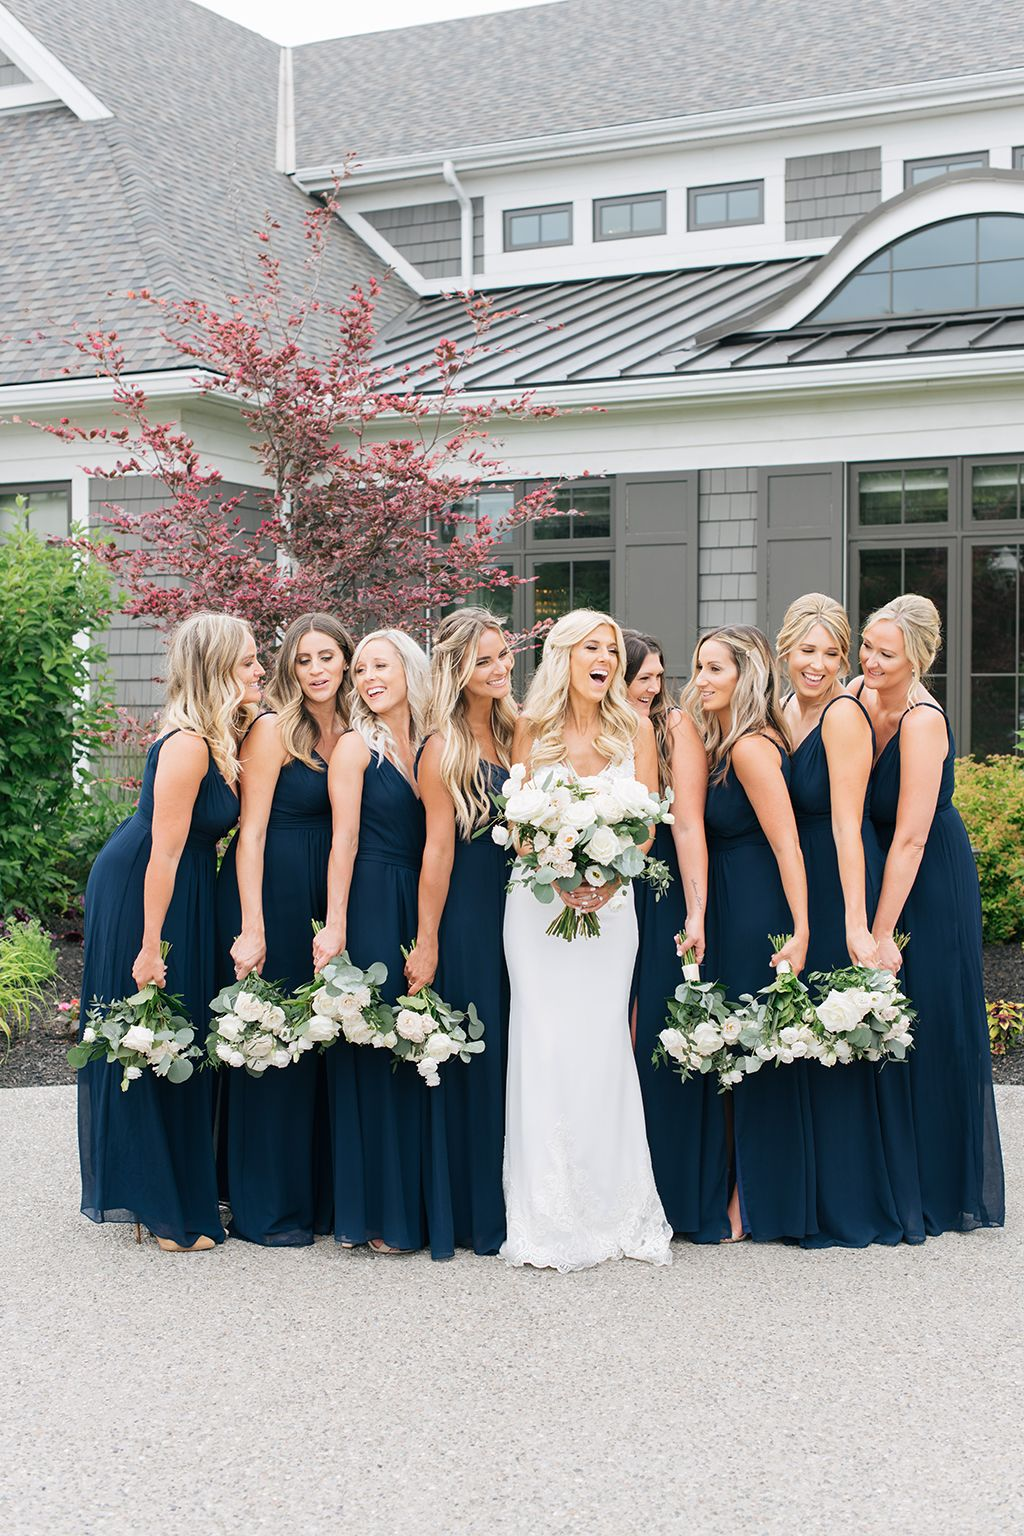 Wedding bridesmaid